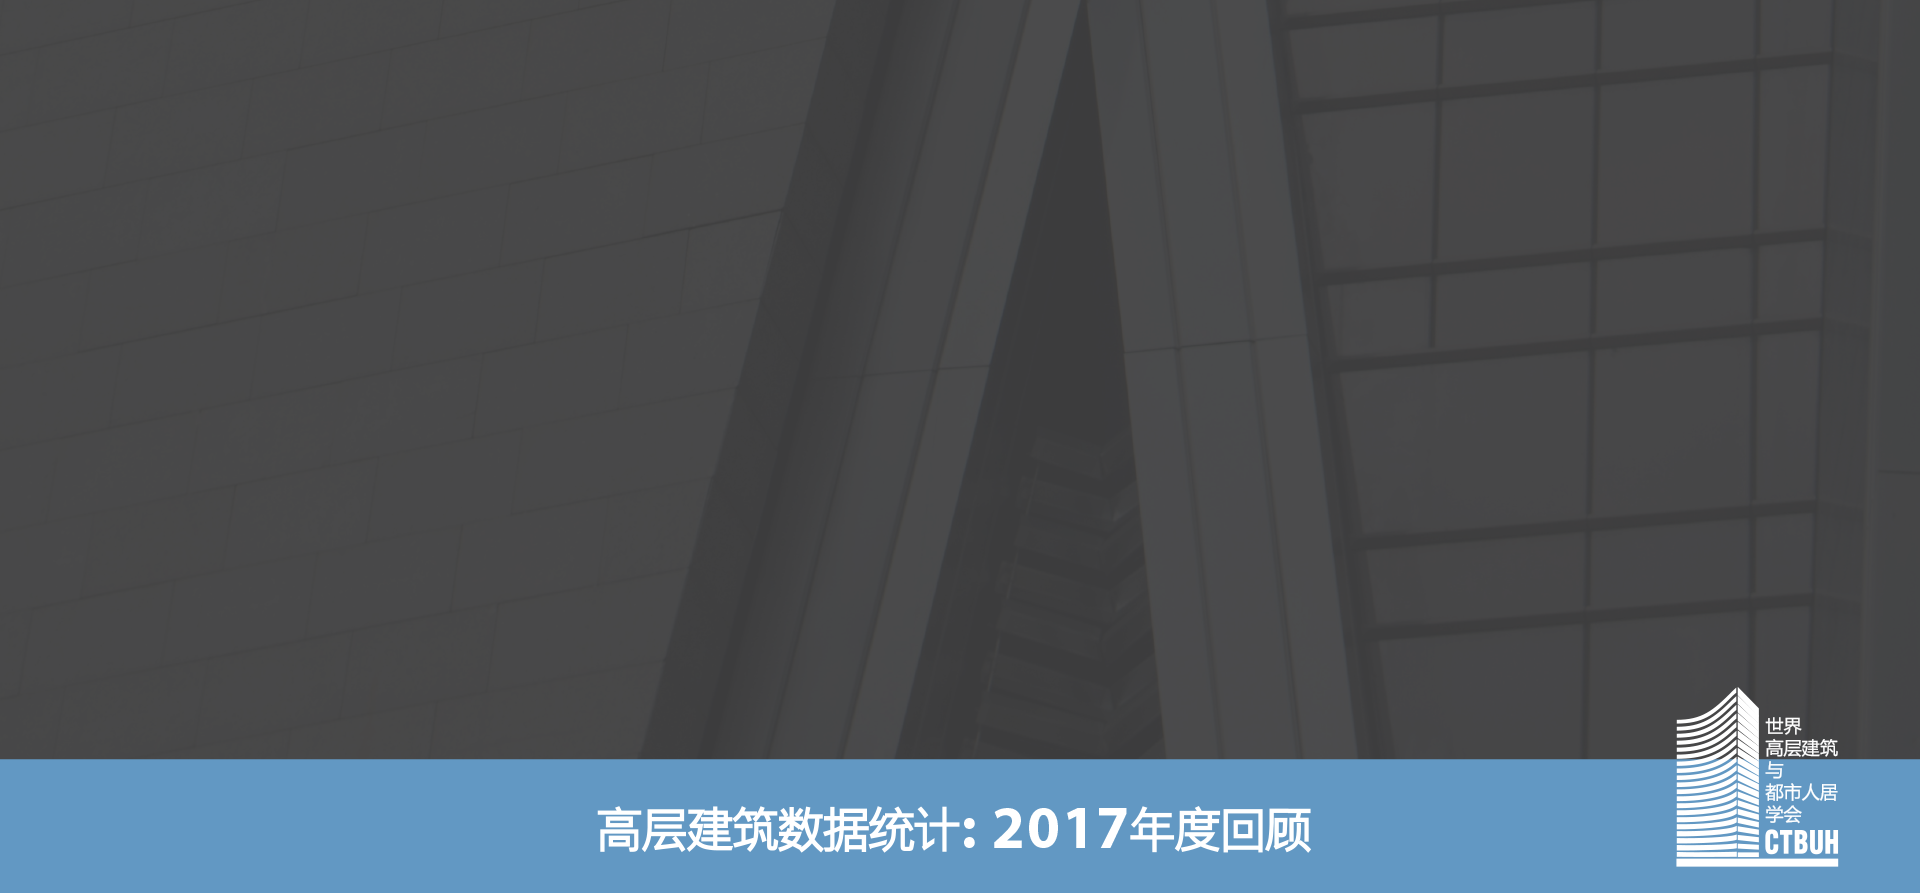 CTBUH 2017 Year in Review